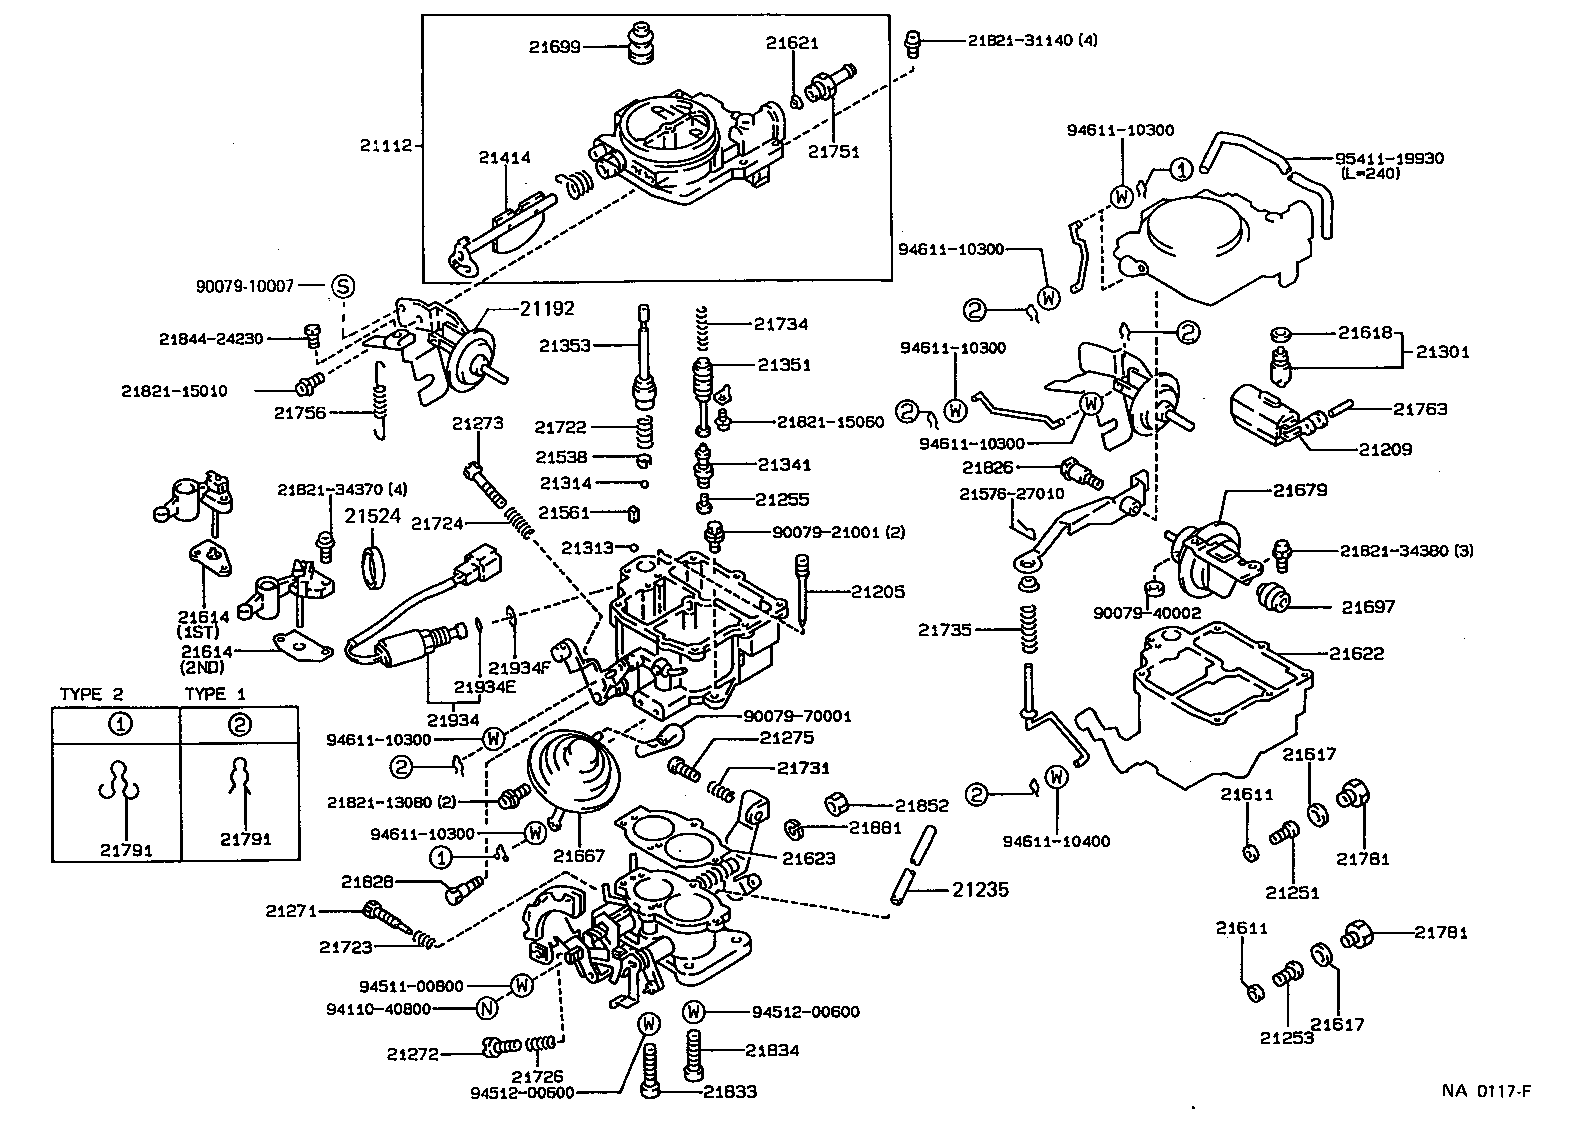 1980 toyota pickup wiring diagram 2002 honda civic dx radio 1978 parts diagrams  for free